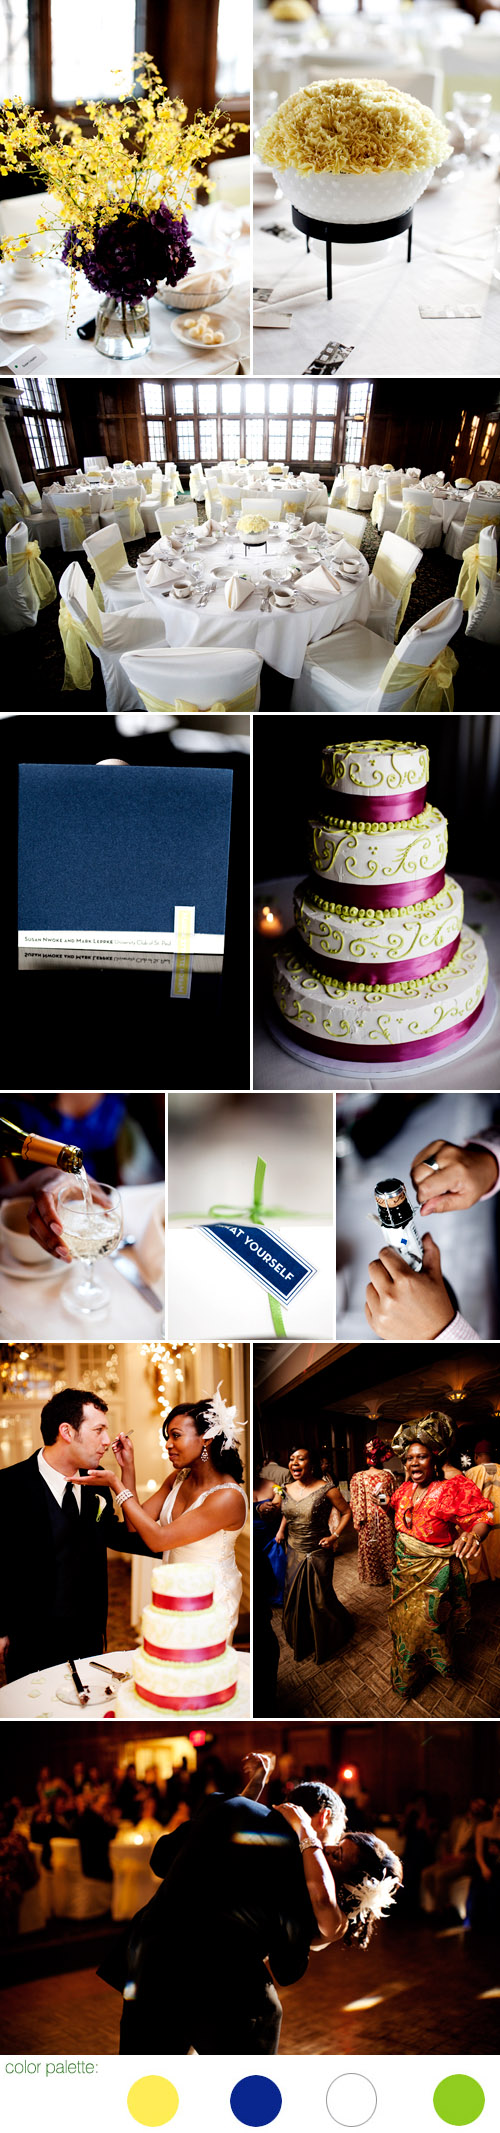 St Paul, Minnesota spring real wedding reception, yellow and blue color palette, images by Eliesa Johnson of Photogen